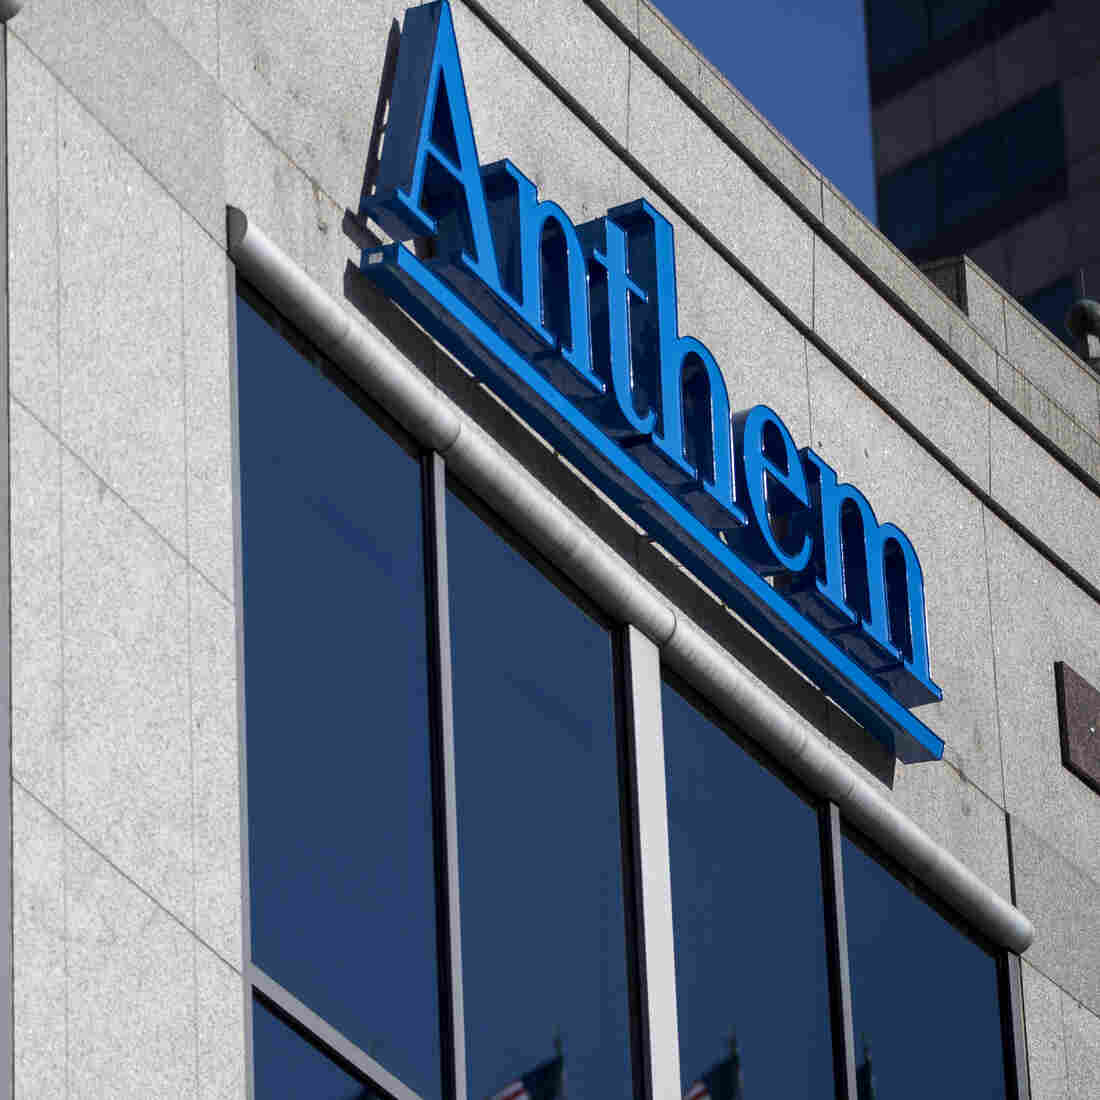 Anthem Hack Renews Calls For Laws To Better Prevent Breaches